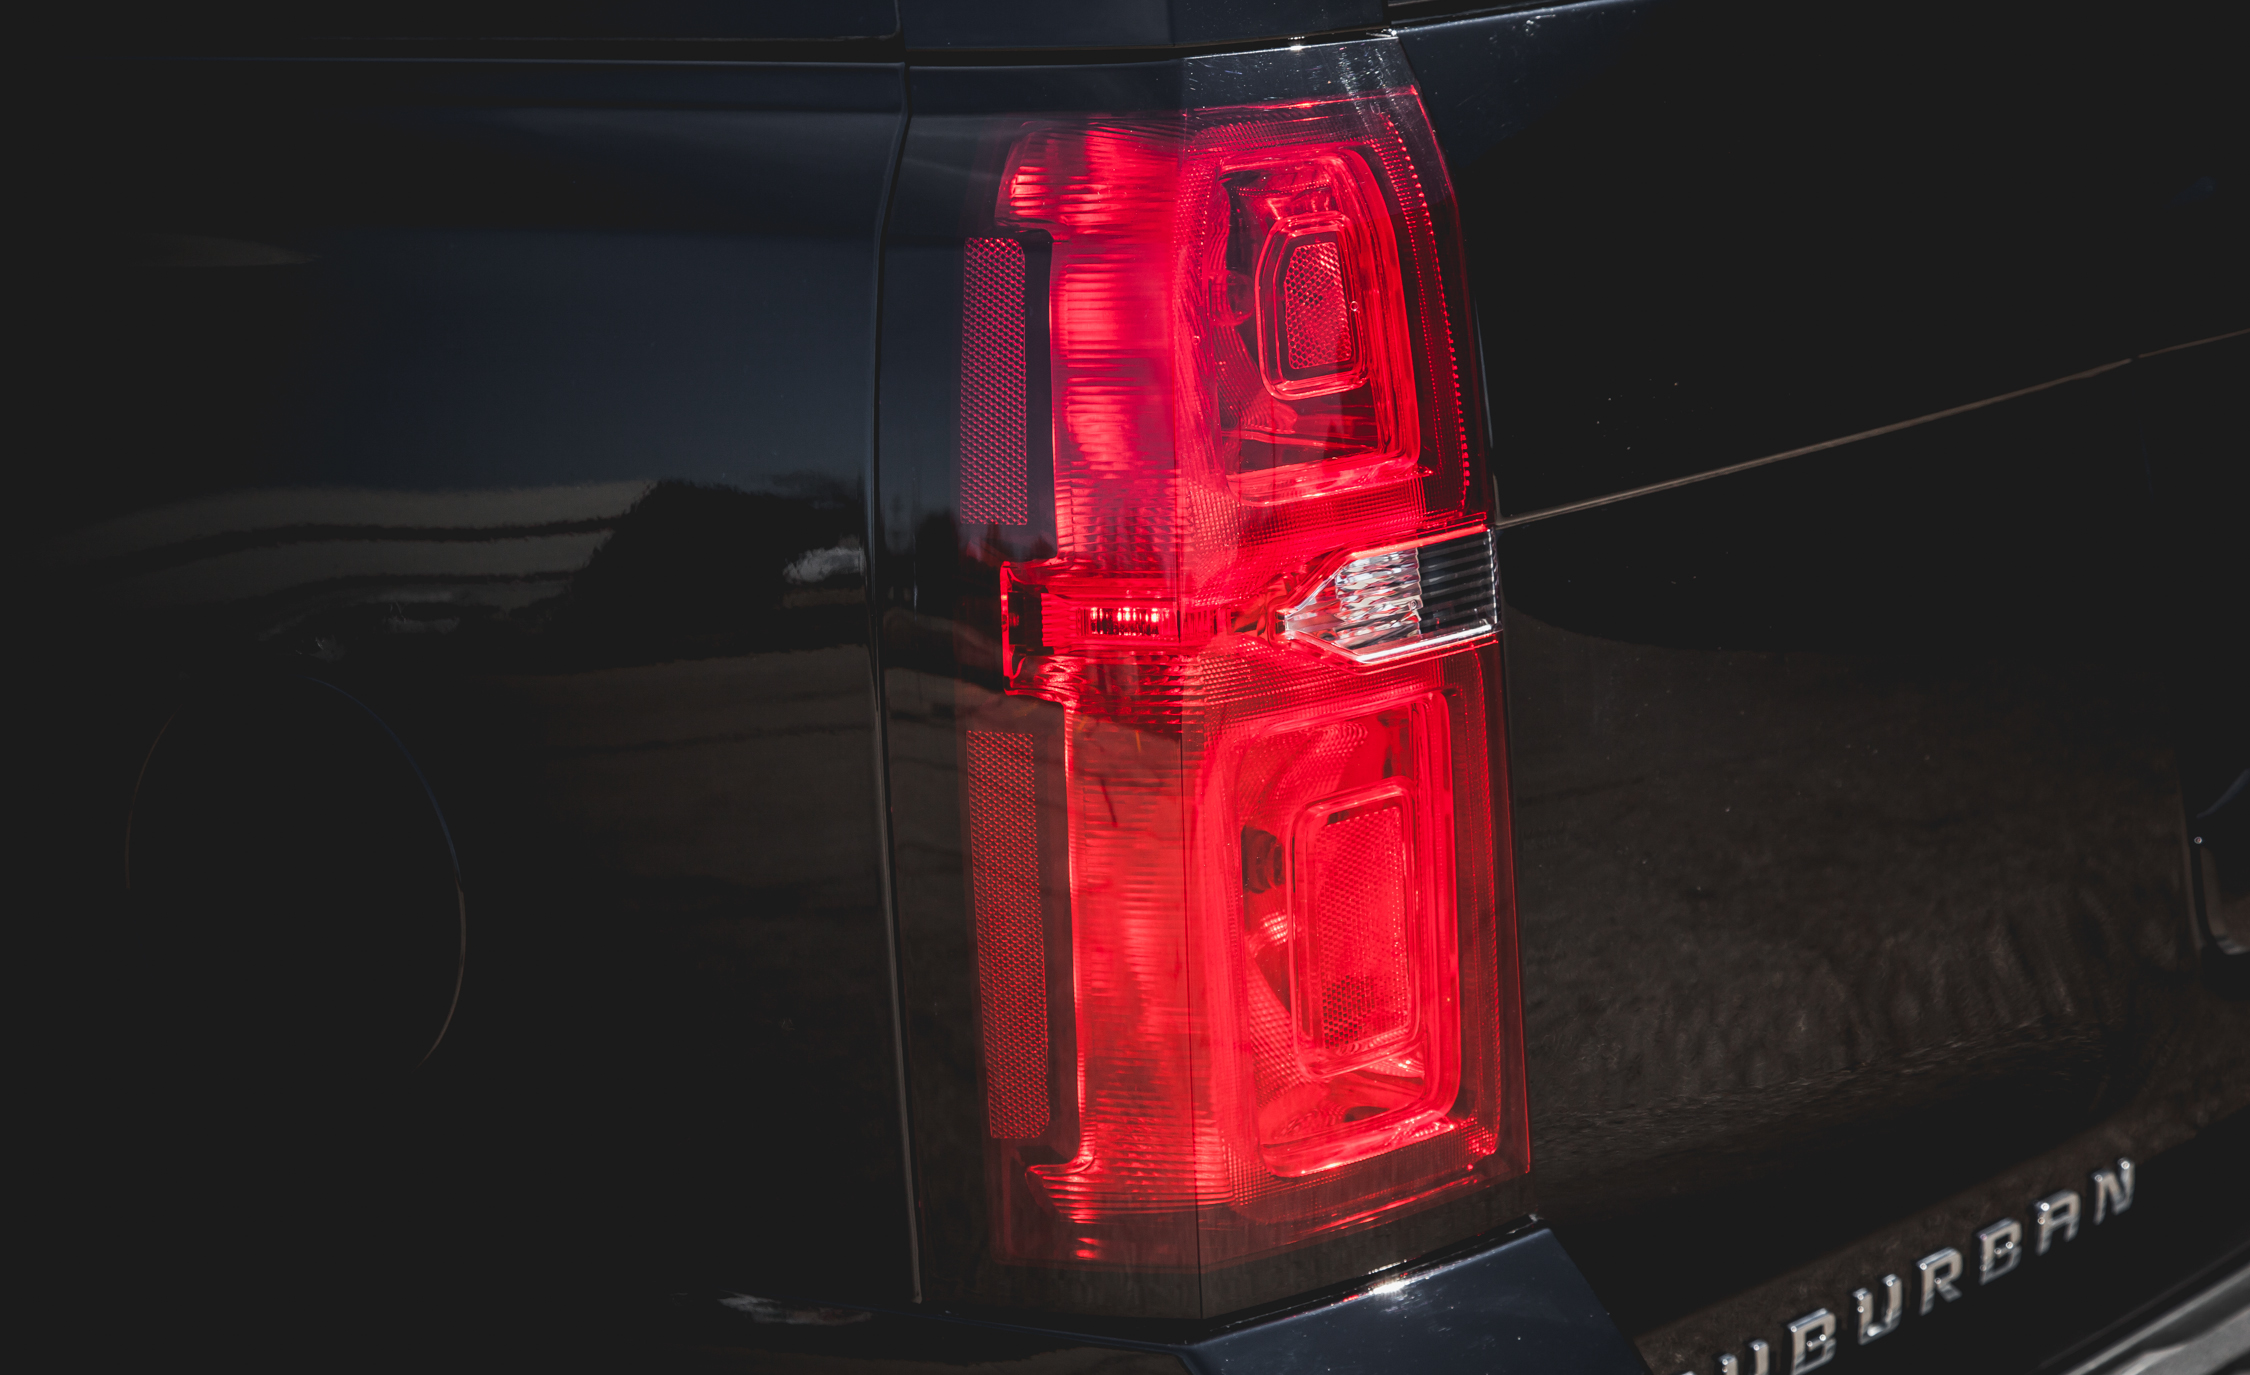 2015 Chevrolet Suburban LTZ Taillight (Photo 26 of 33)